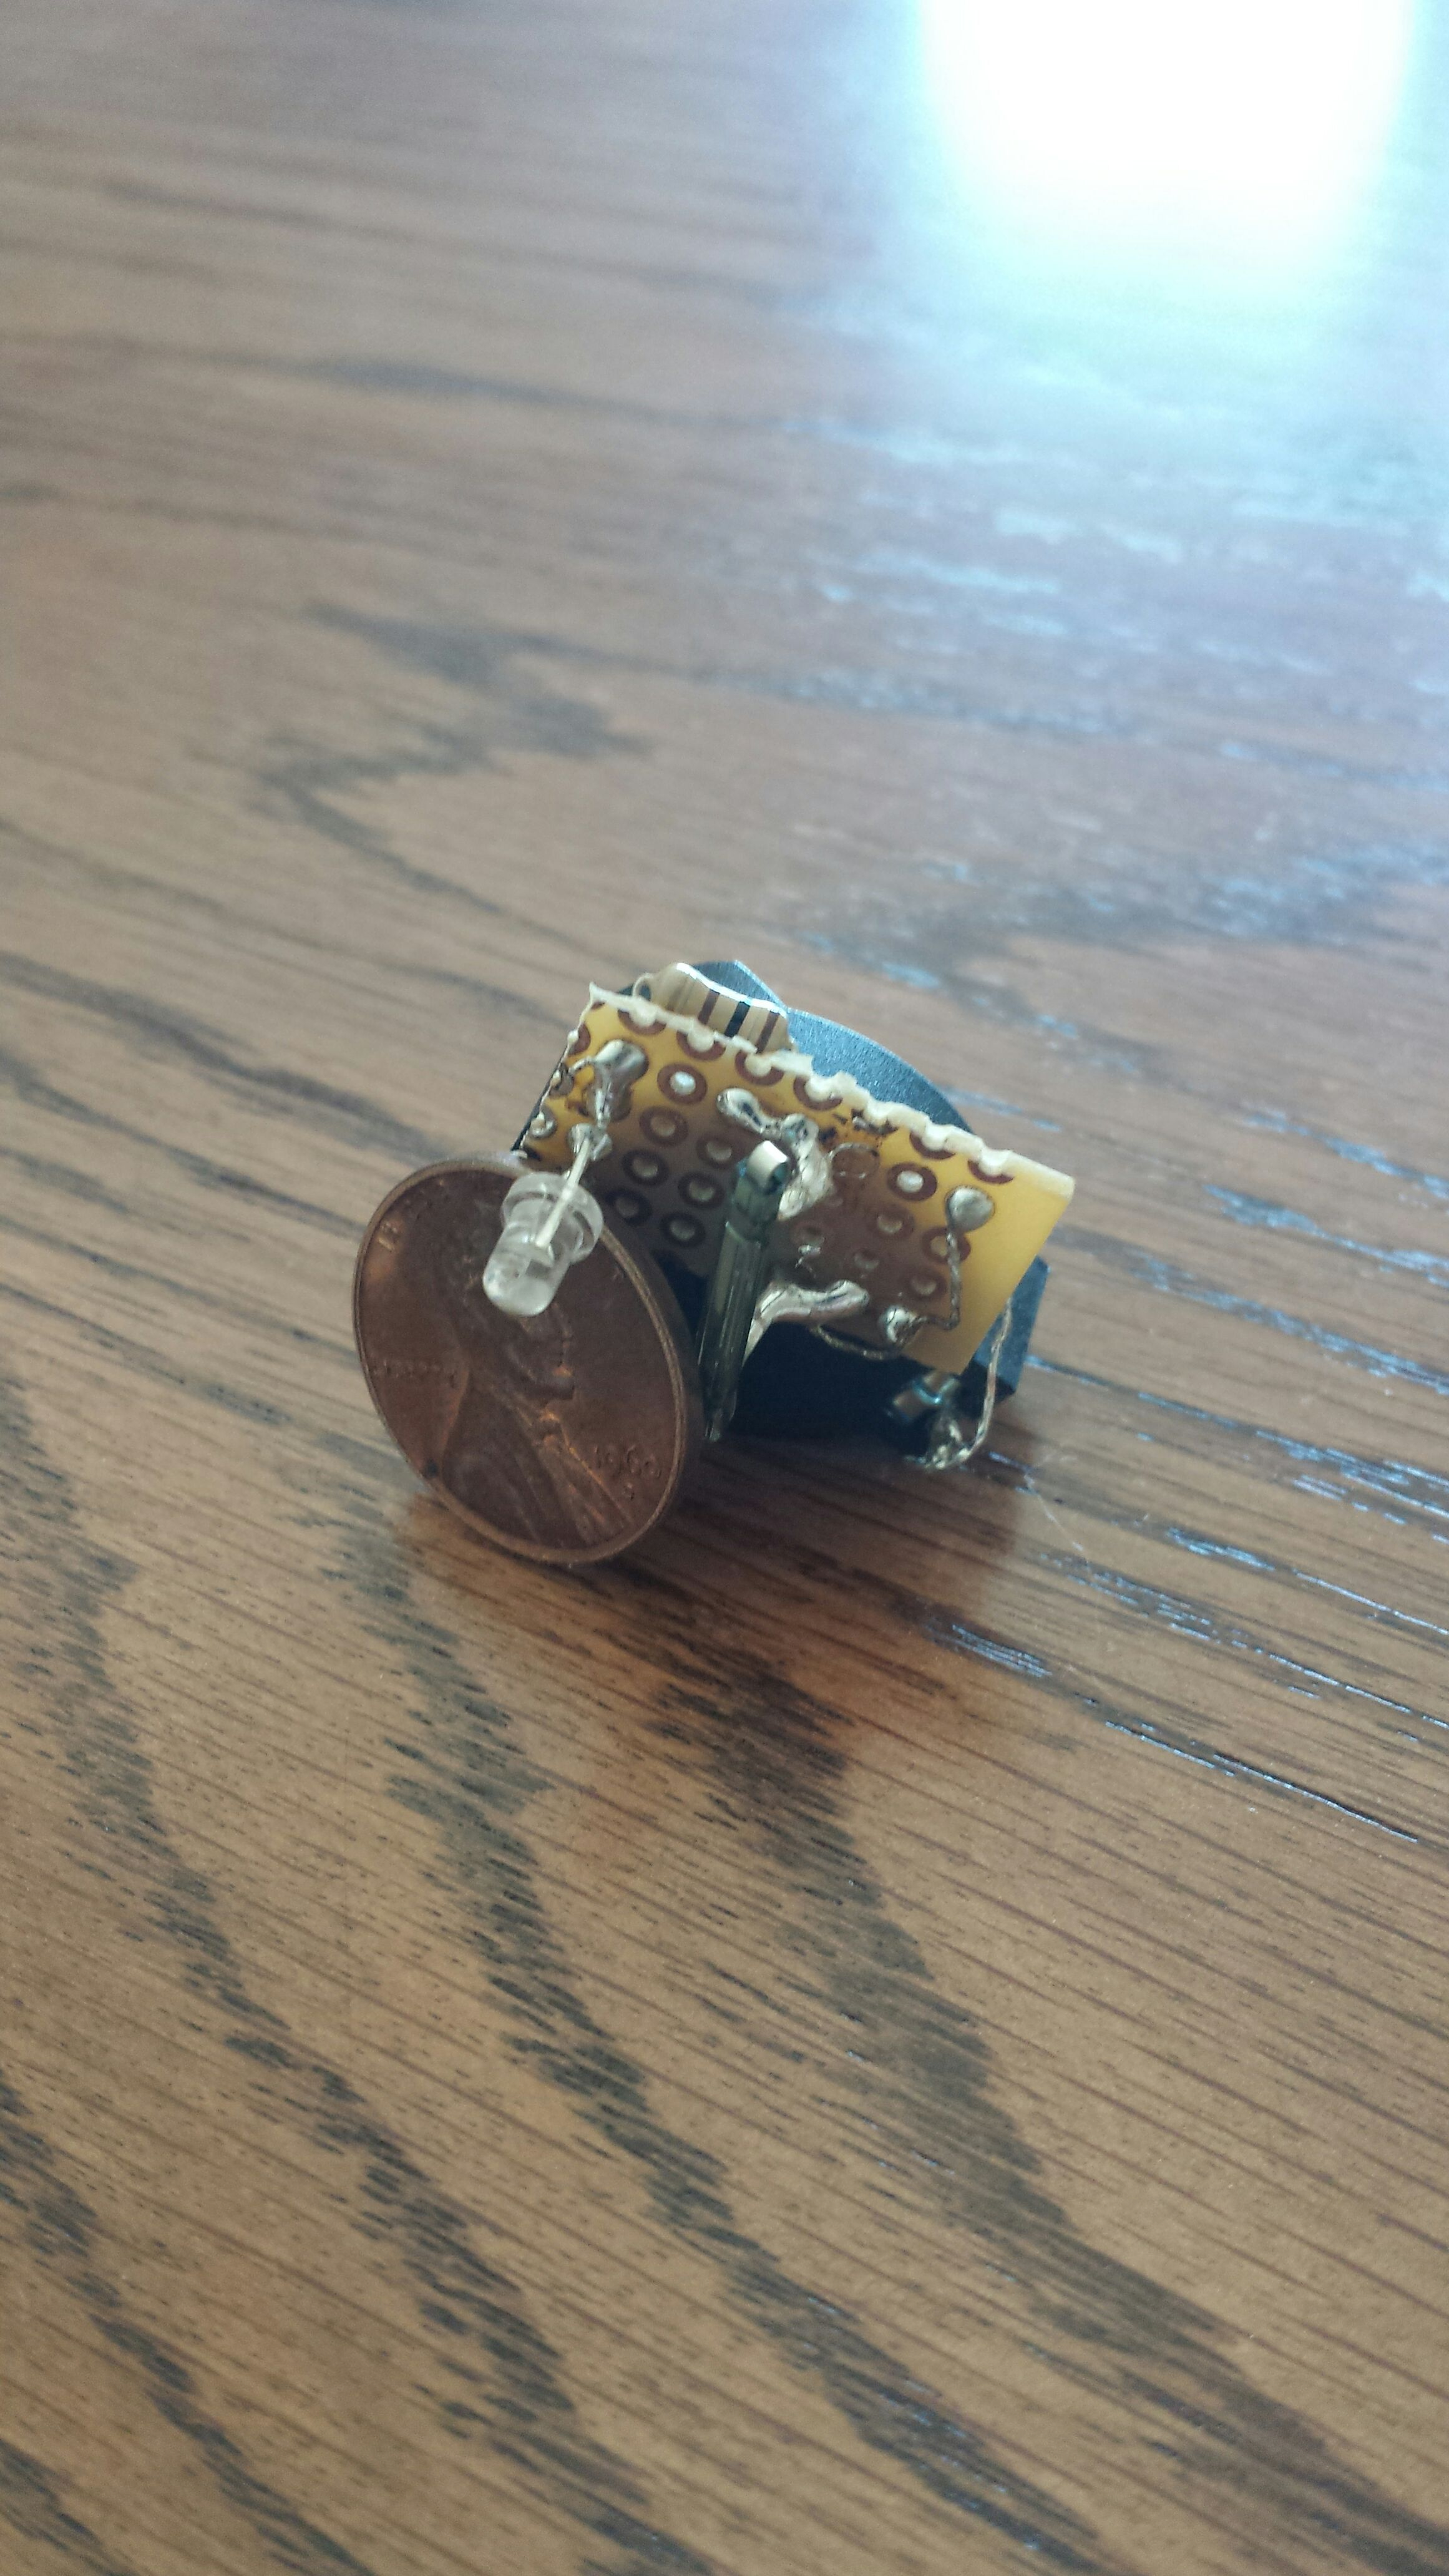 Picture of TinyLight- the Micro Flashlight